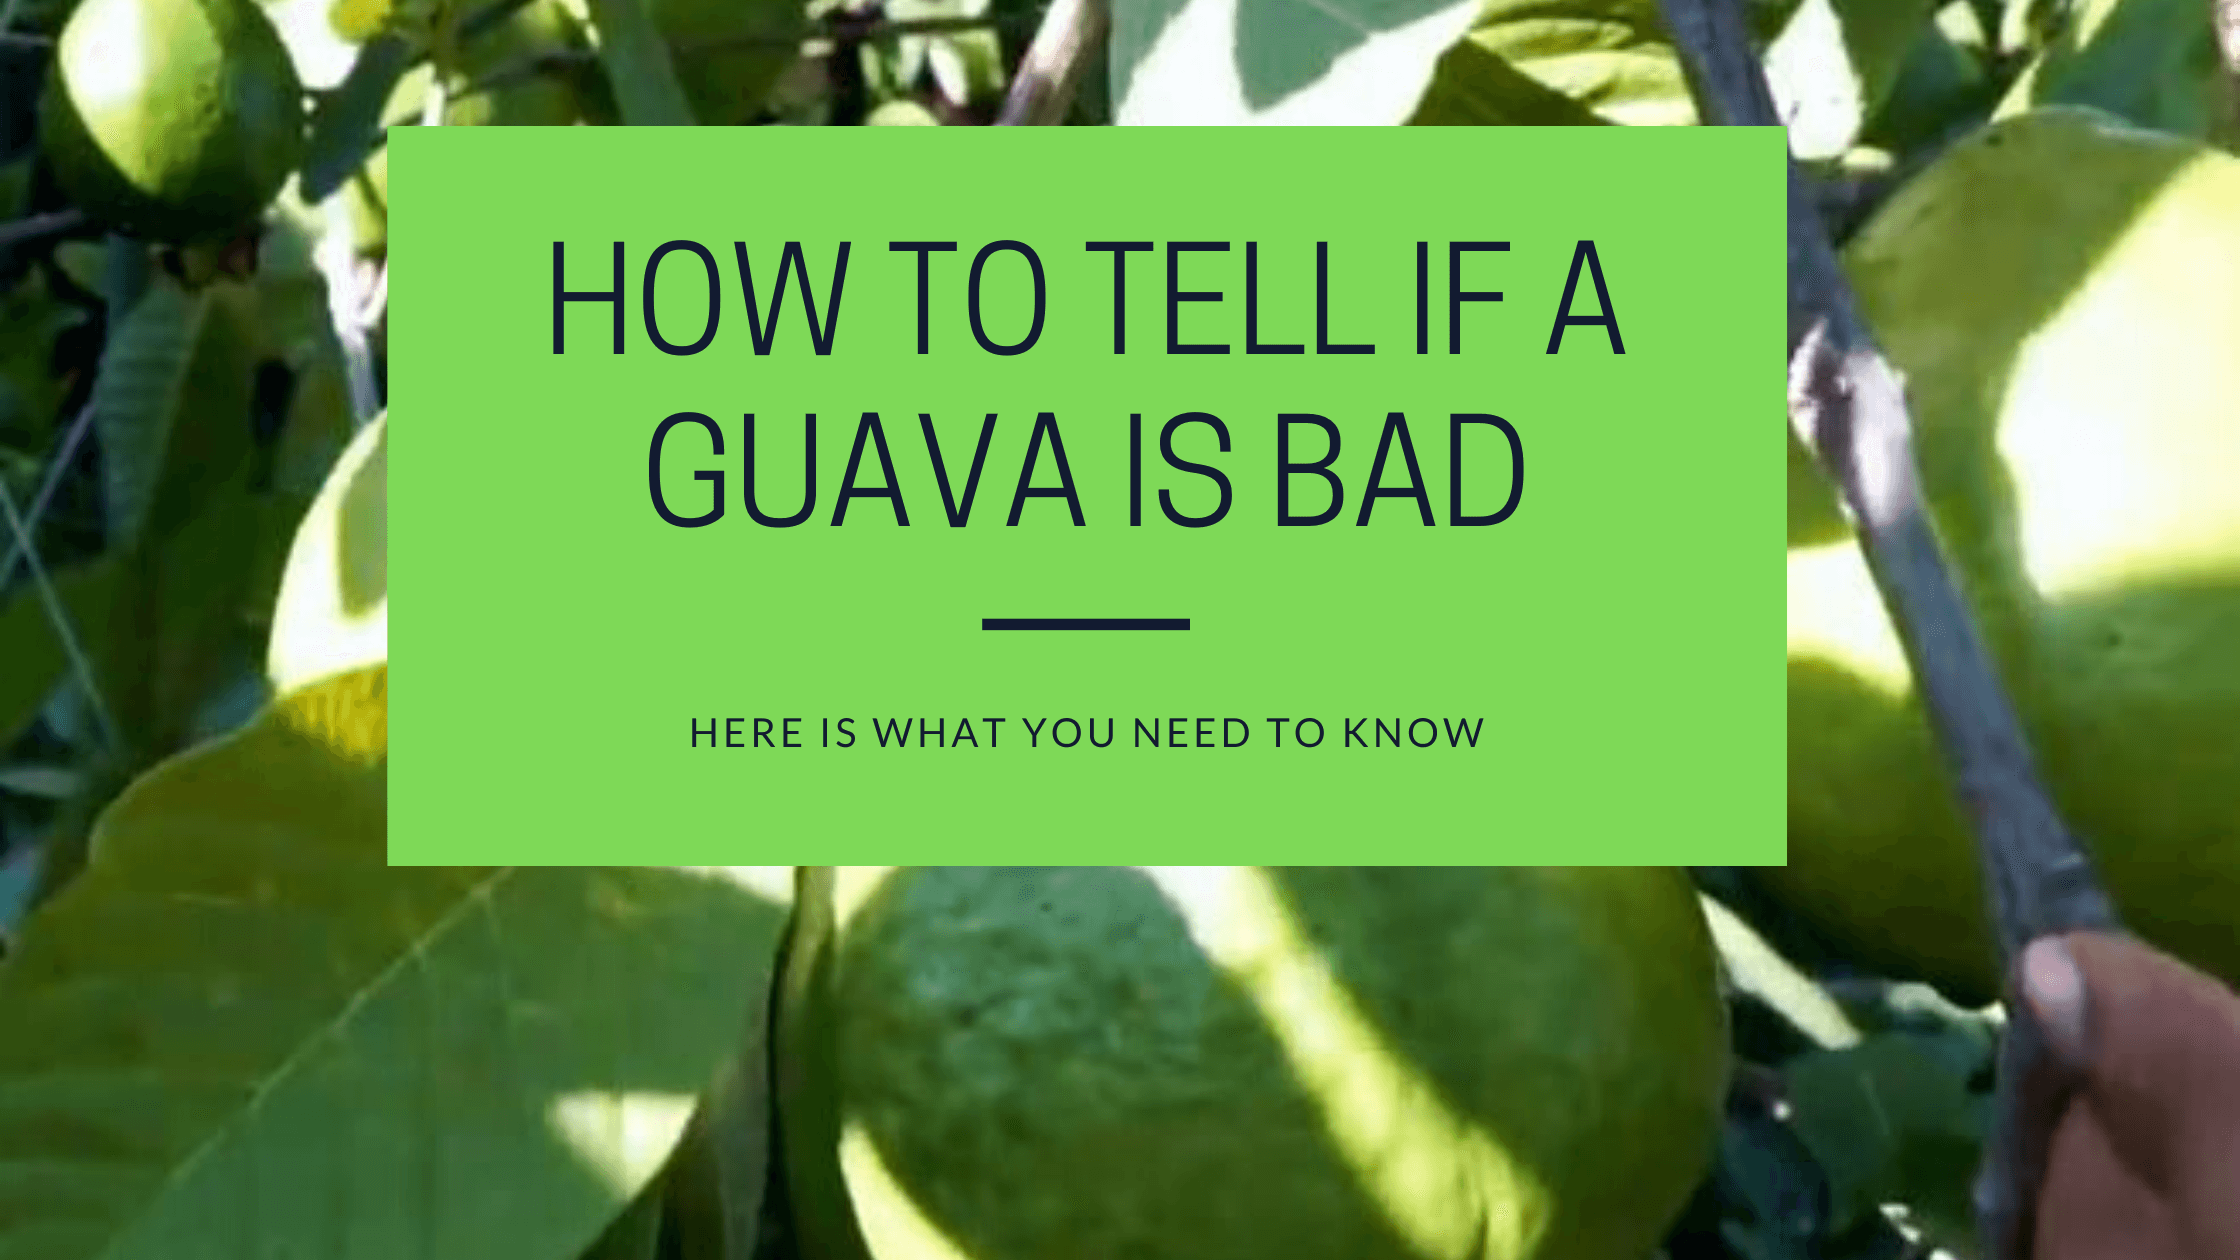 How To Tell If A Guava Is Bad